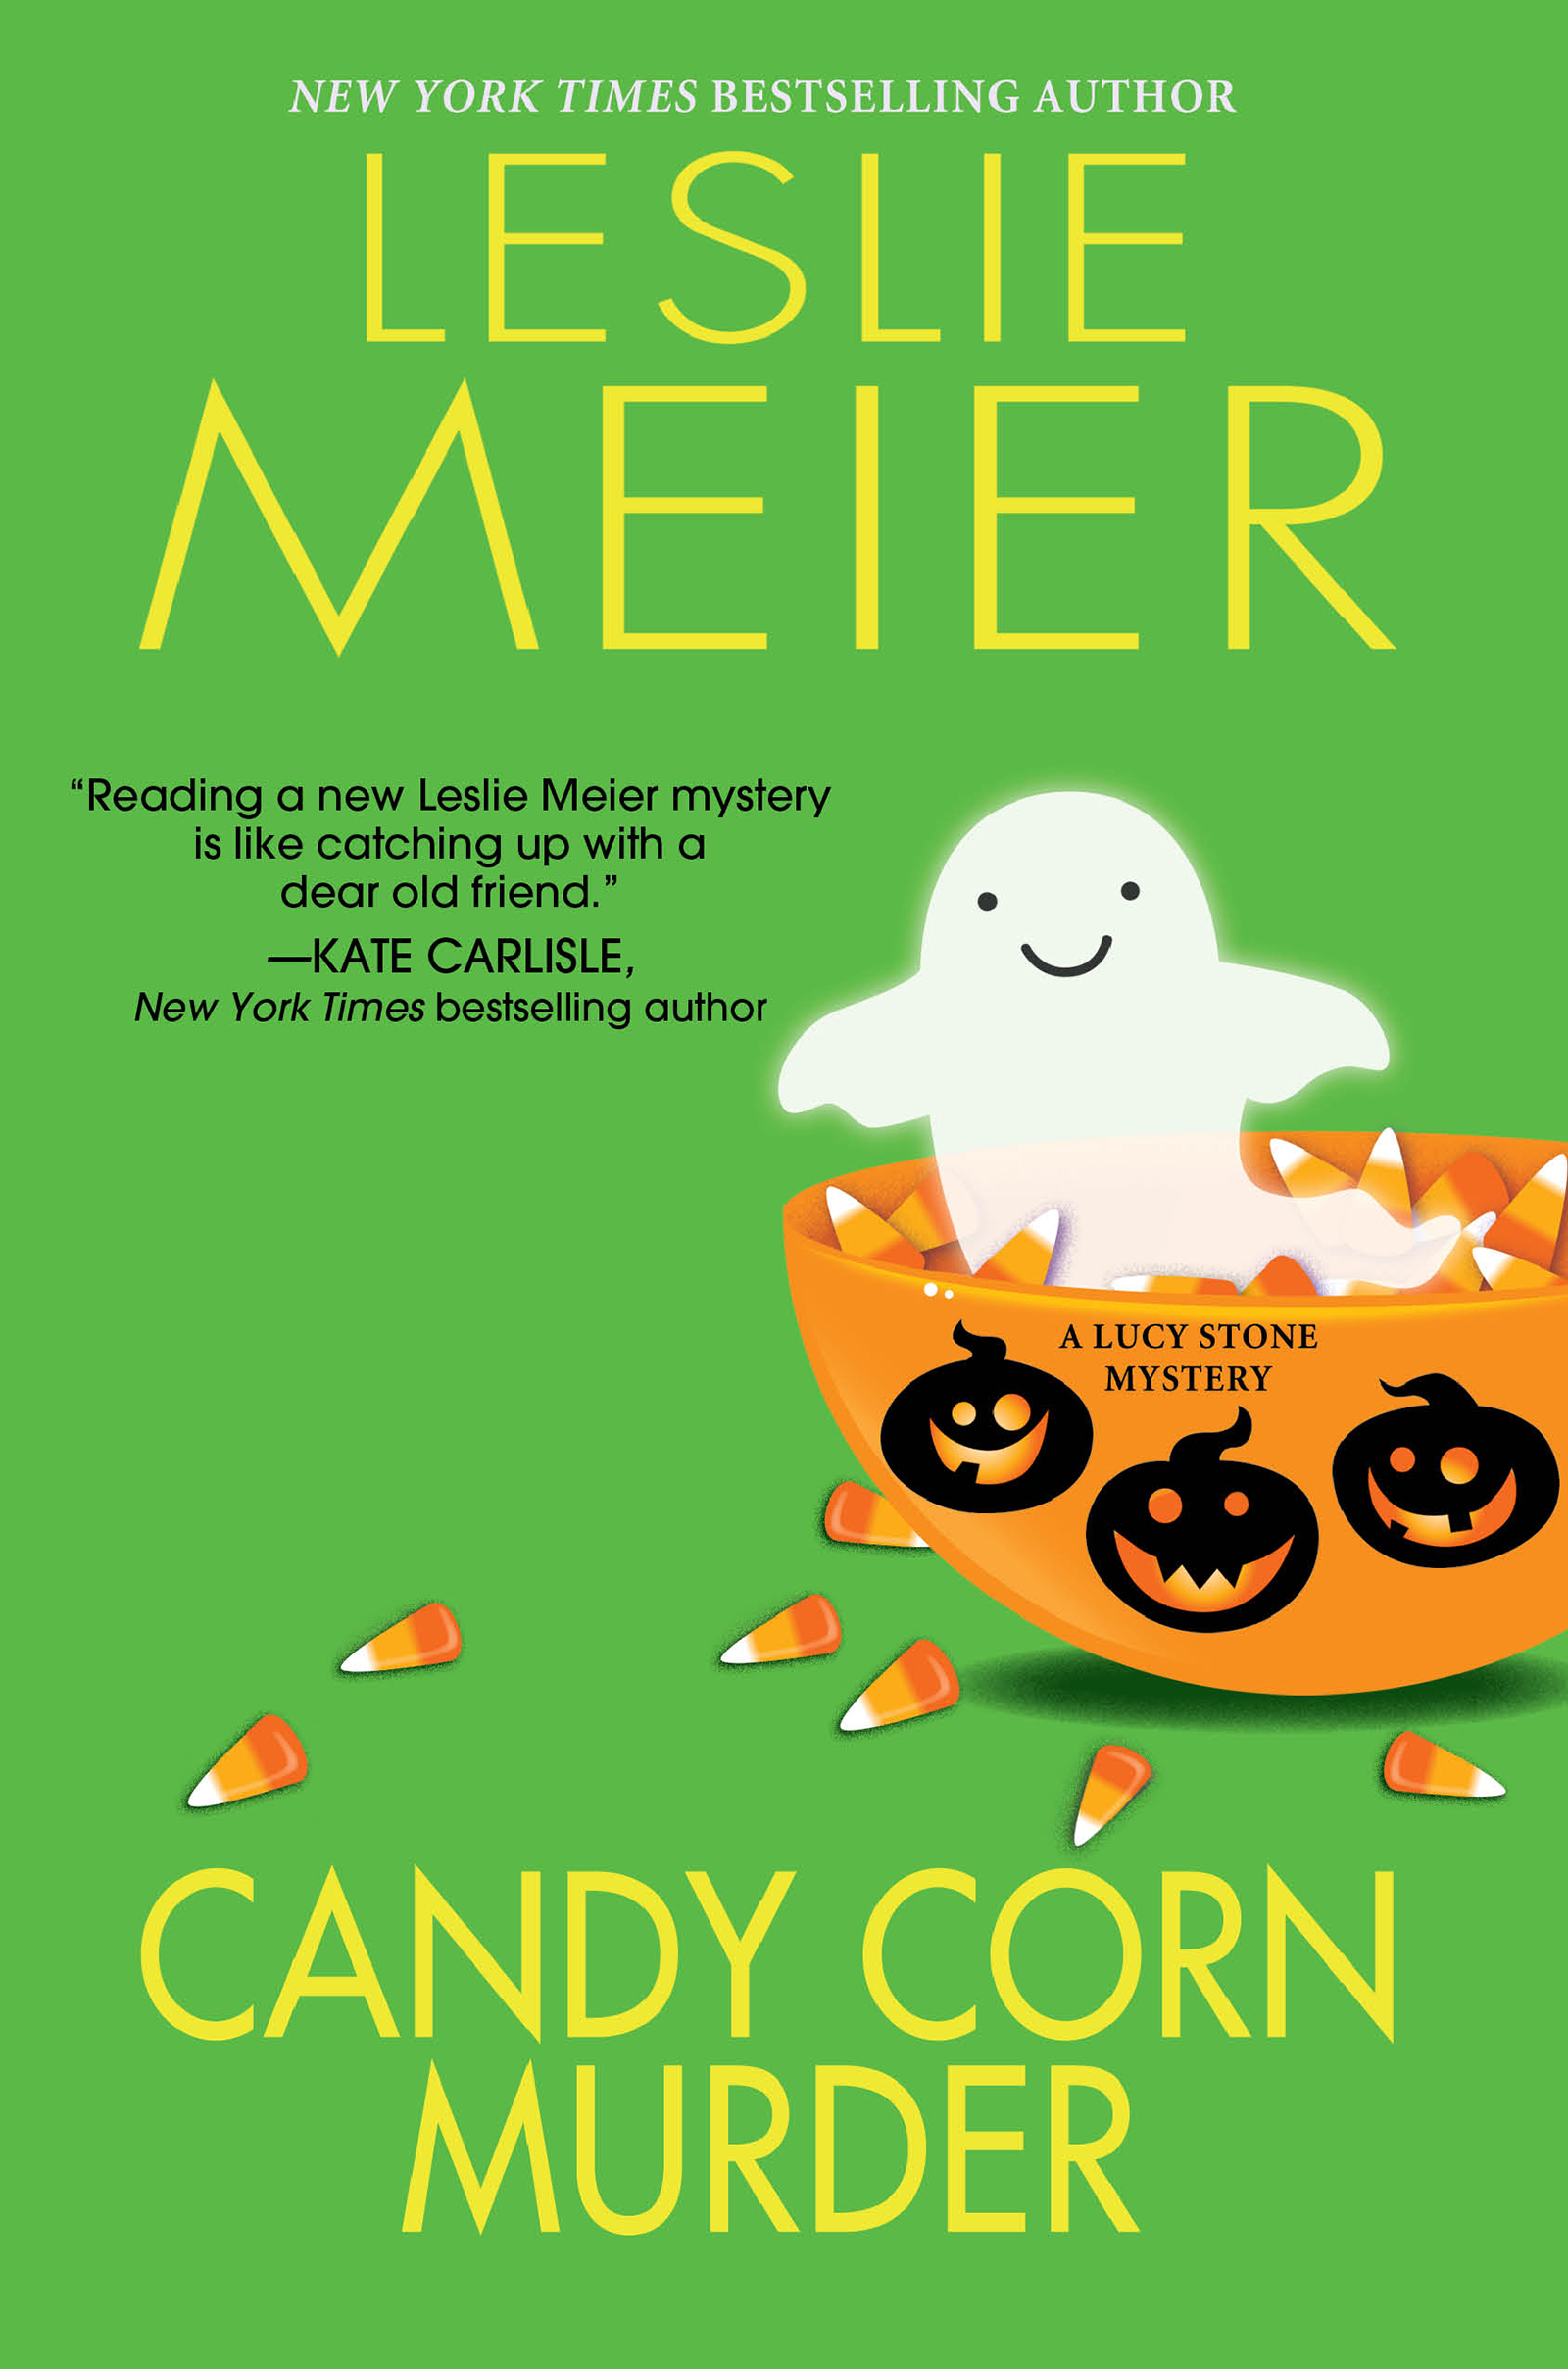 Candy corn murder a Lucy Stone mystery cover image